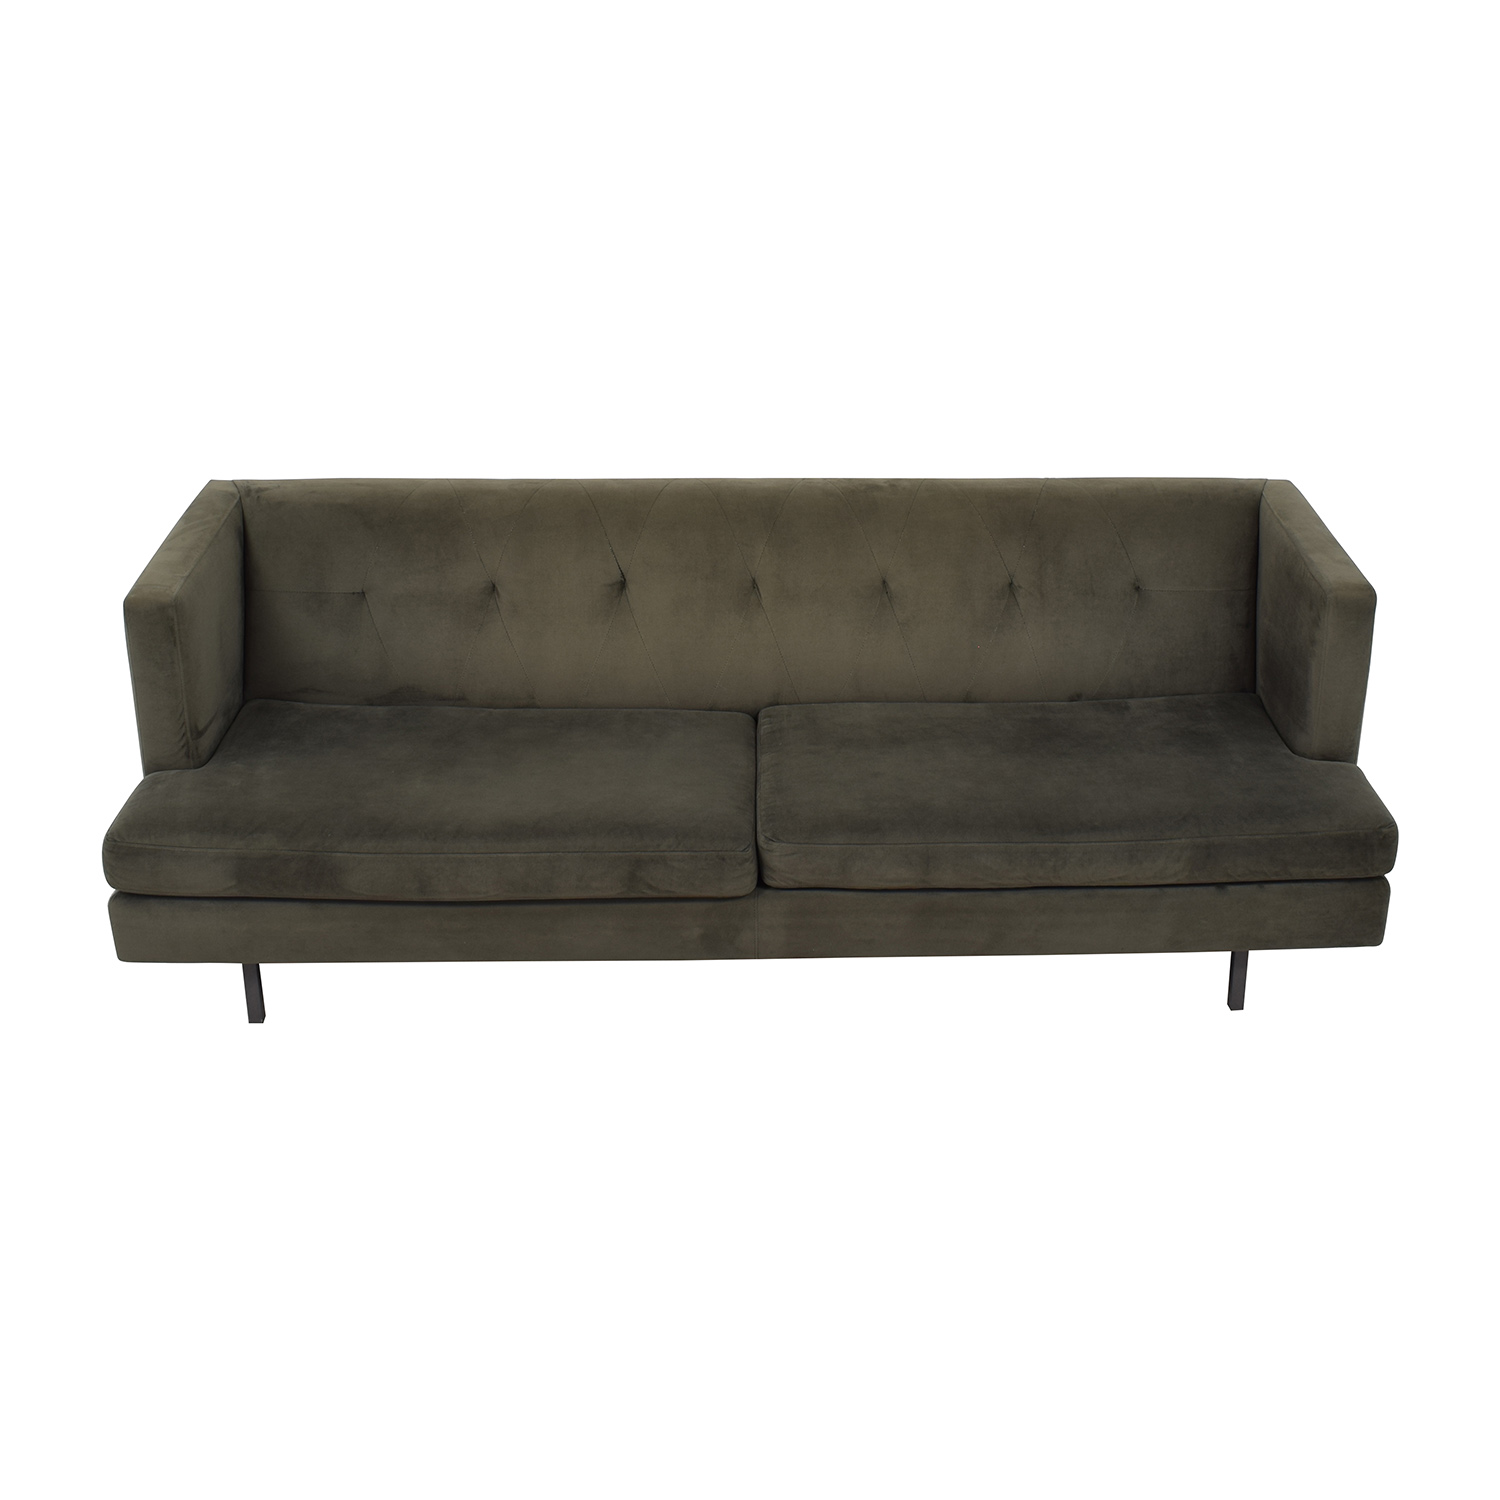 CB2 CB2 Avec Grey Sofa with Brushed Stainless Steel Legs on sale